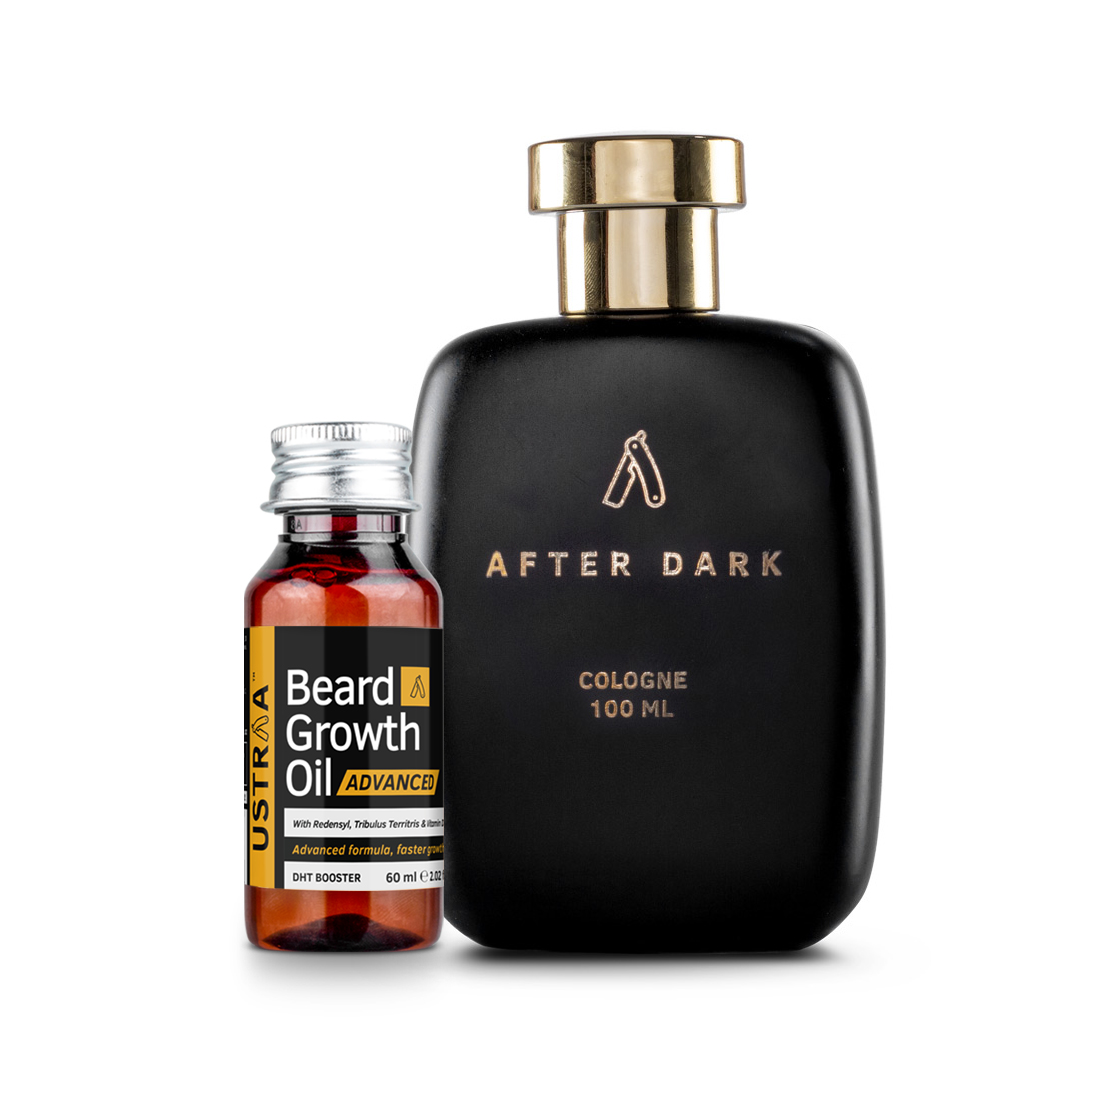 Beard Growth Oil- Advanced & Cologne- After Dark